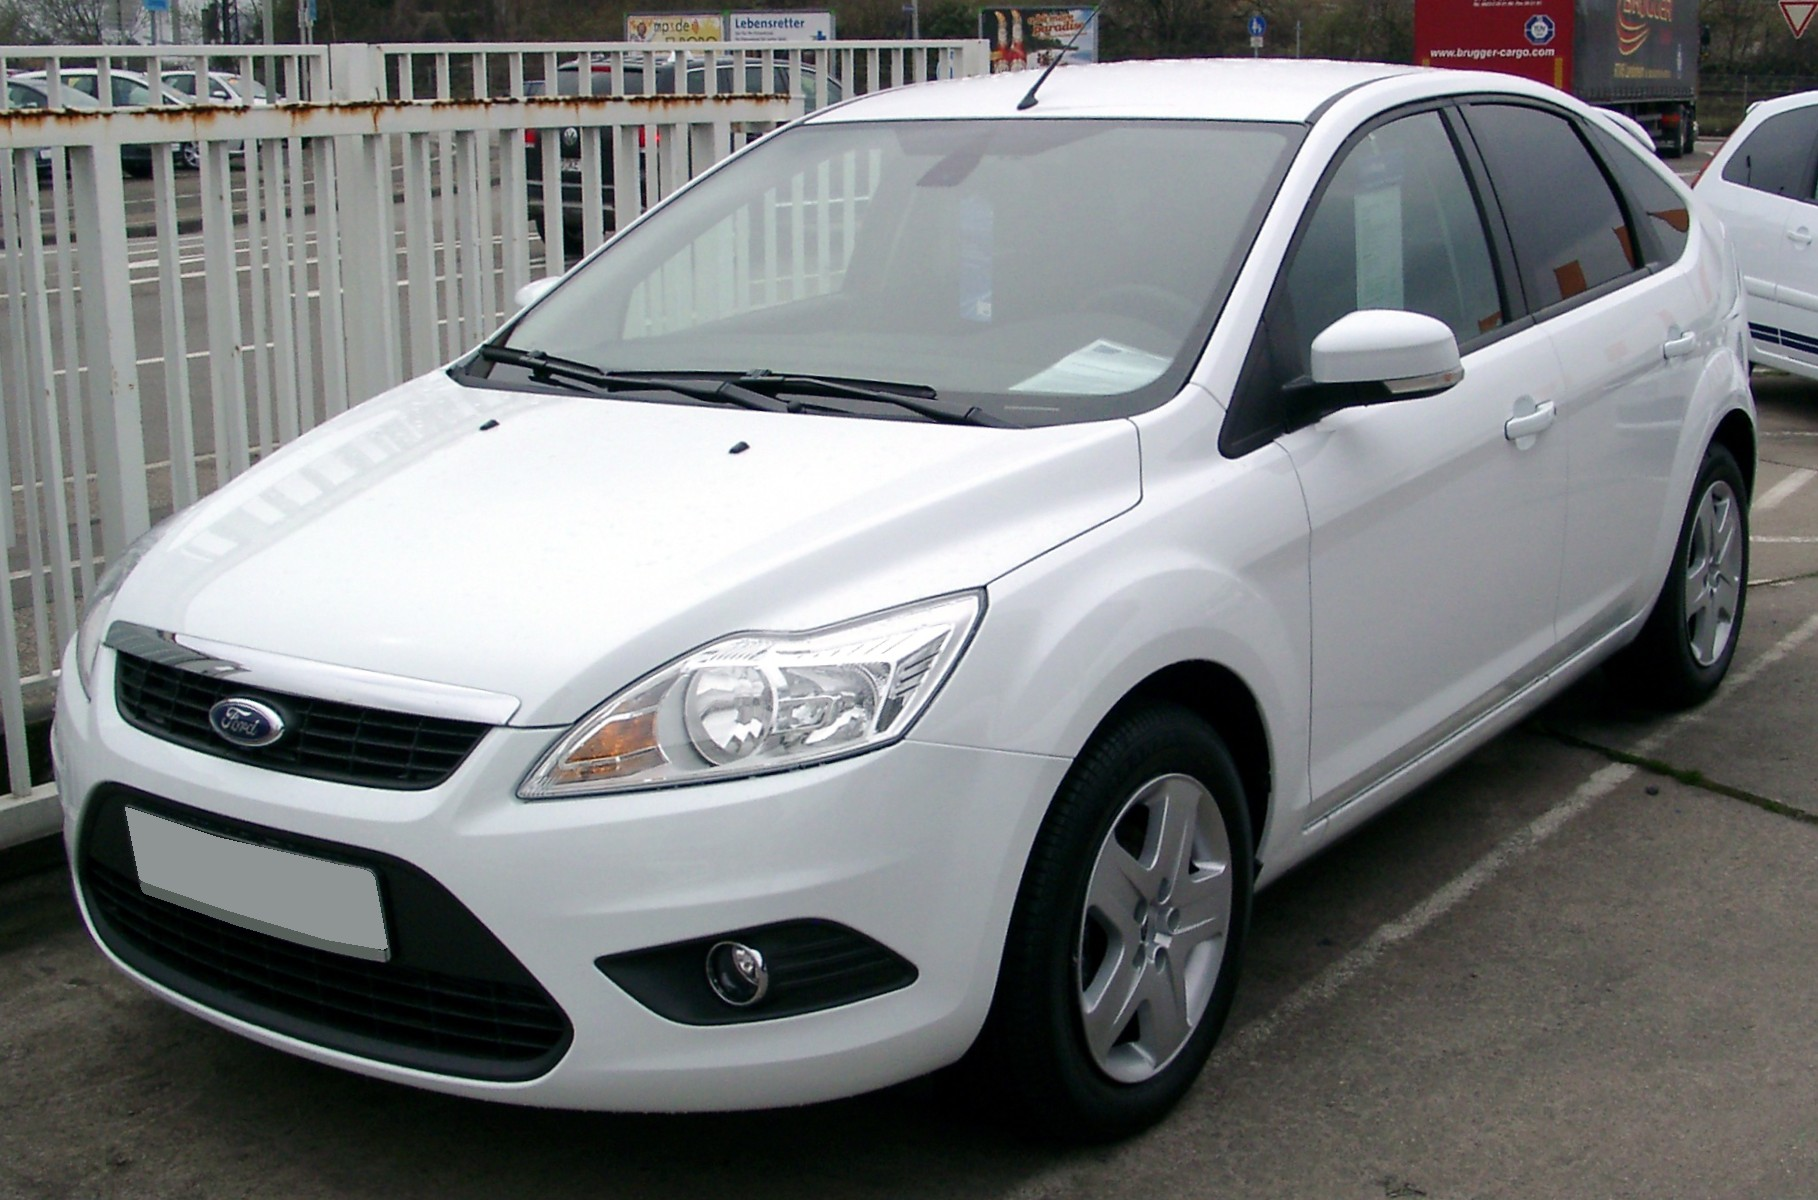 Ford_Focus_front_20080409.jpg